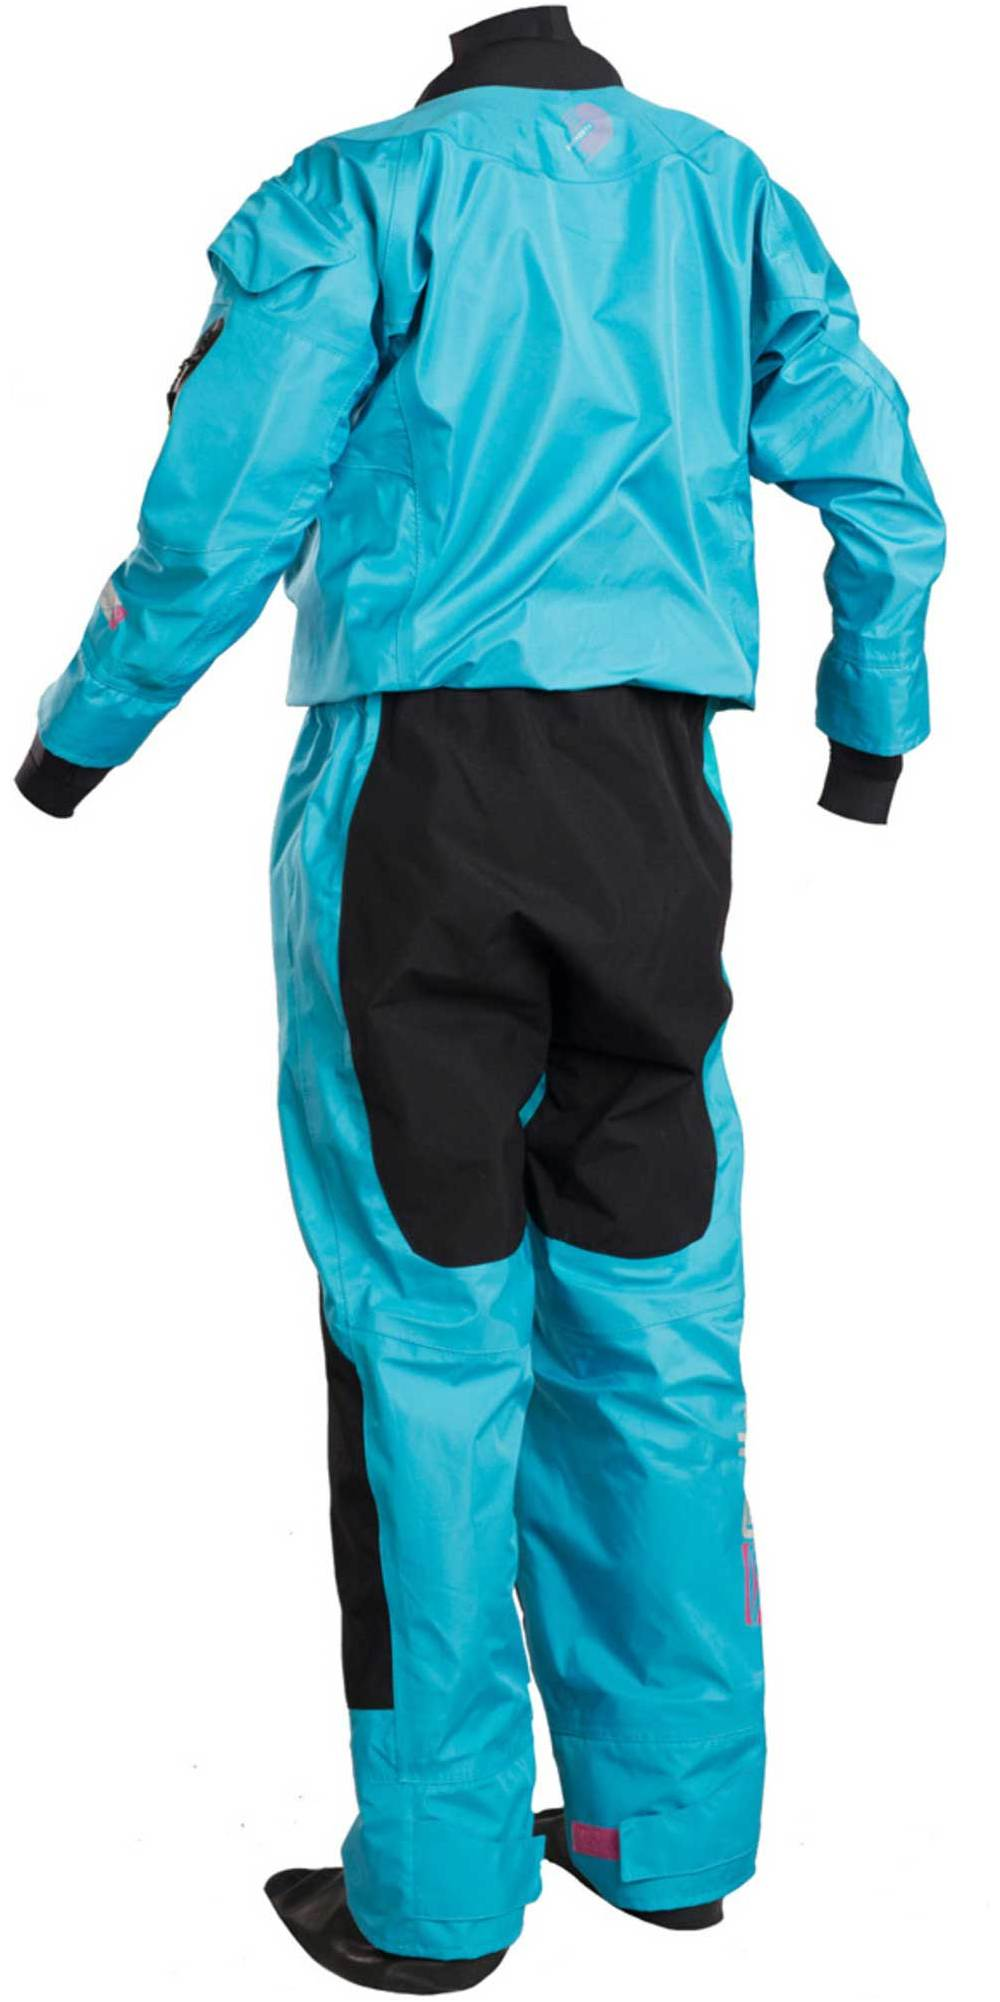 Gul Dartmouth Eclip Zip Drysuit Dry Suit in Blue Heat Taped Seams and 3 Layer Fabric With Free Undersuit